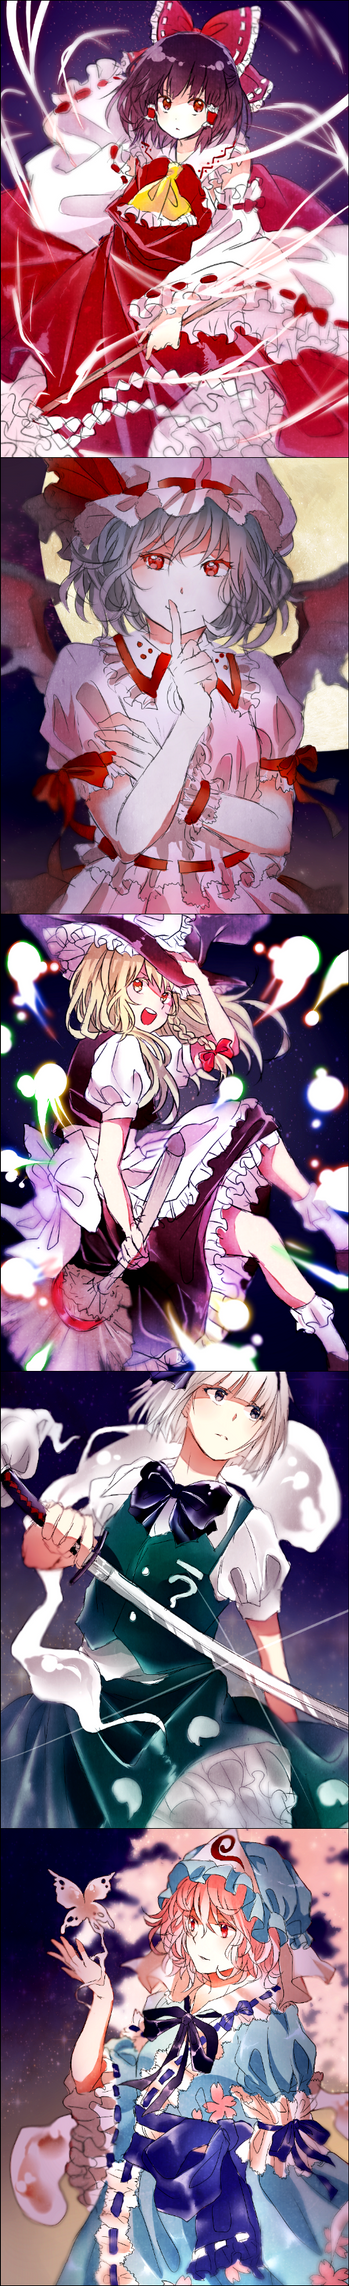 Touhou Doodles by Andressina